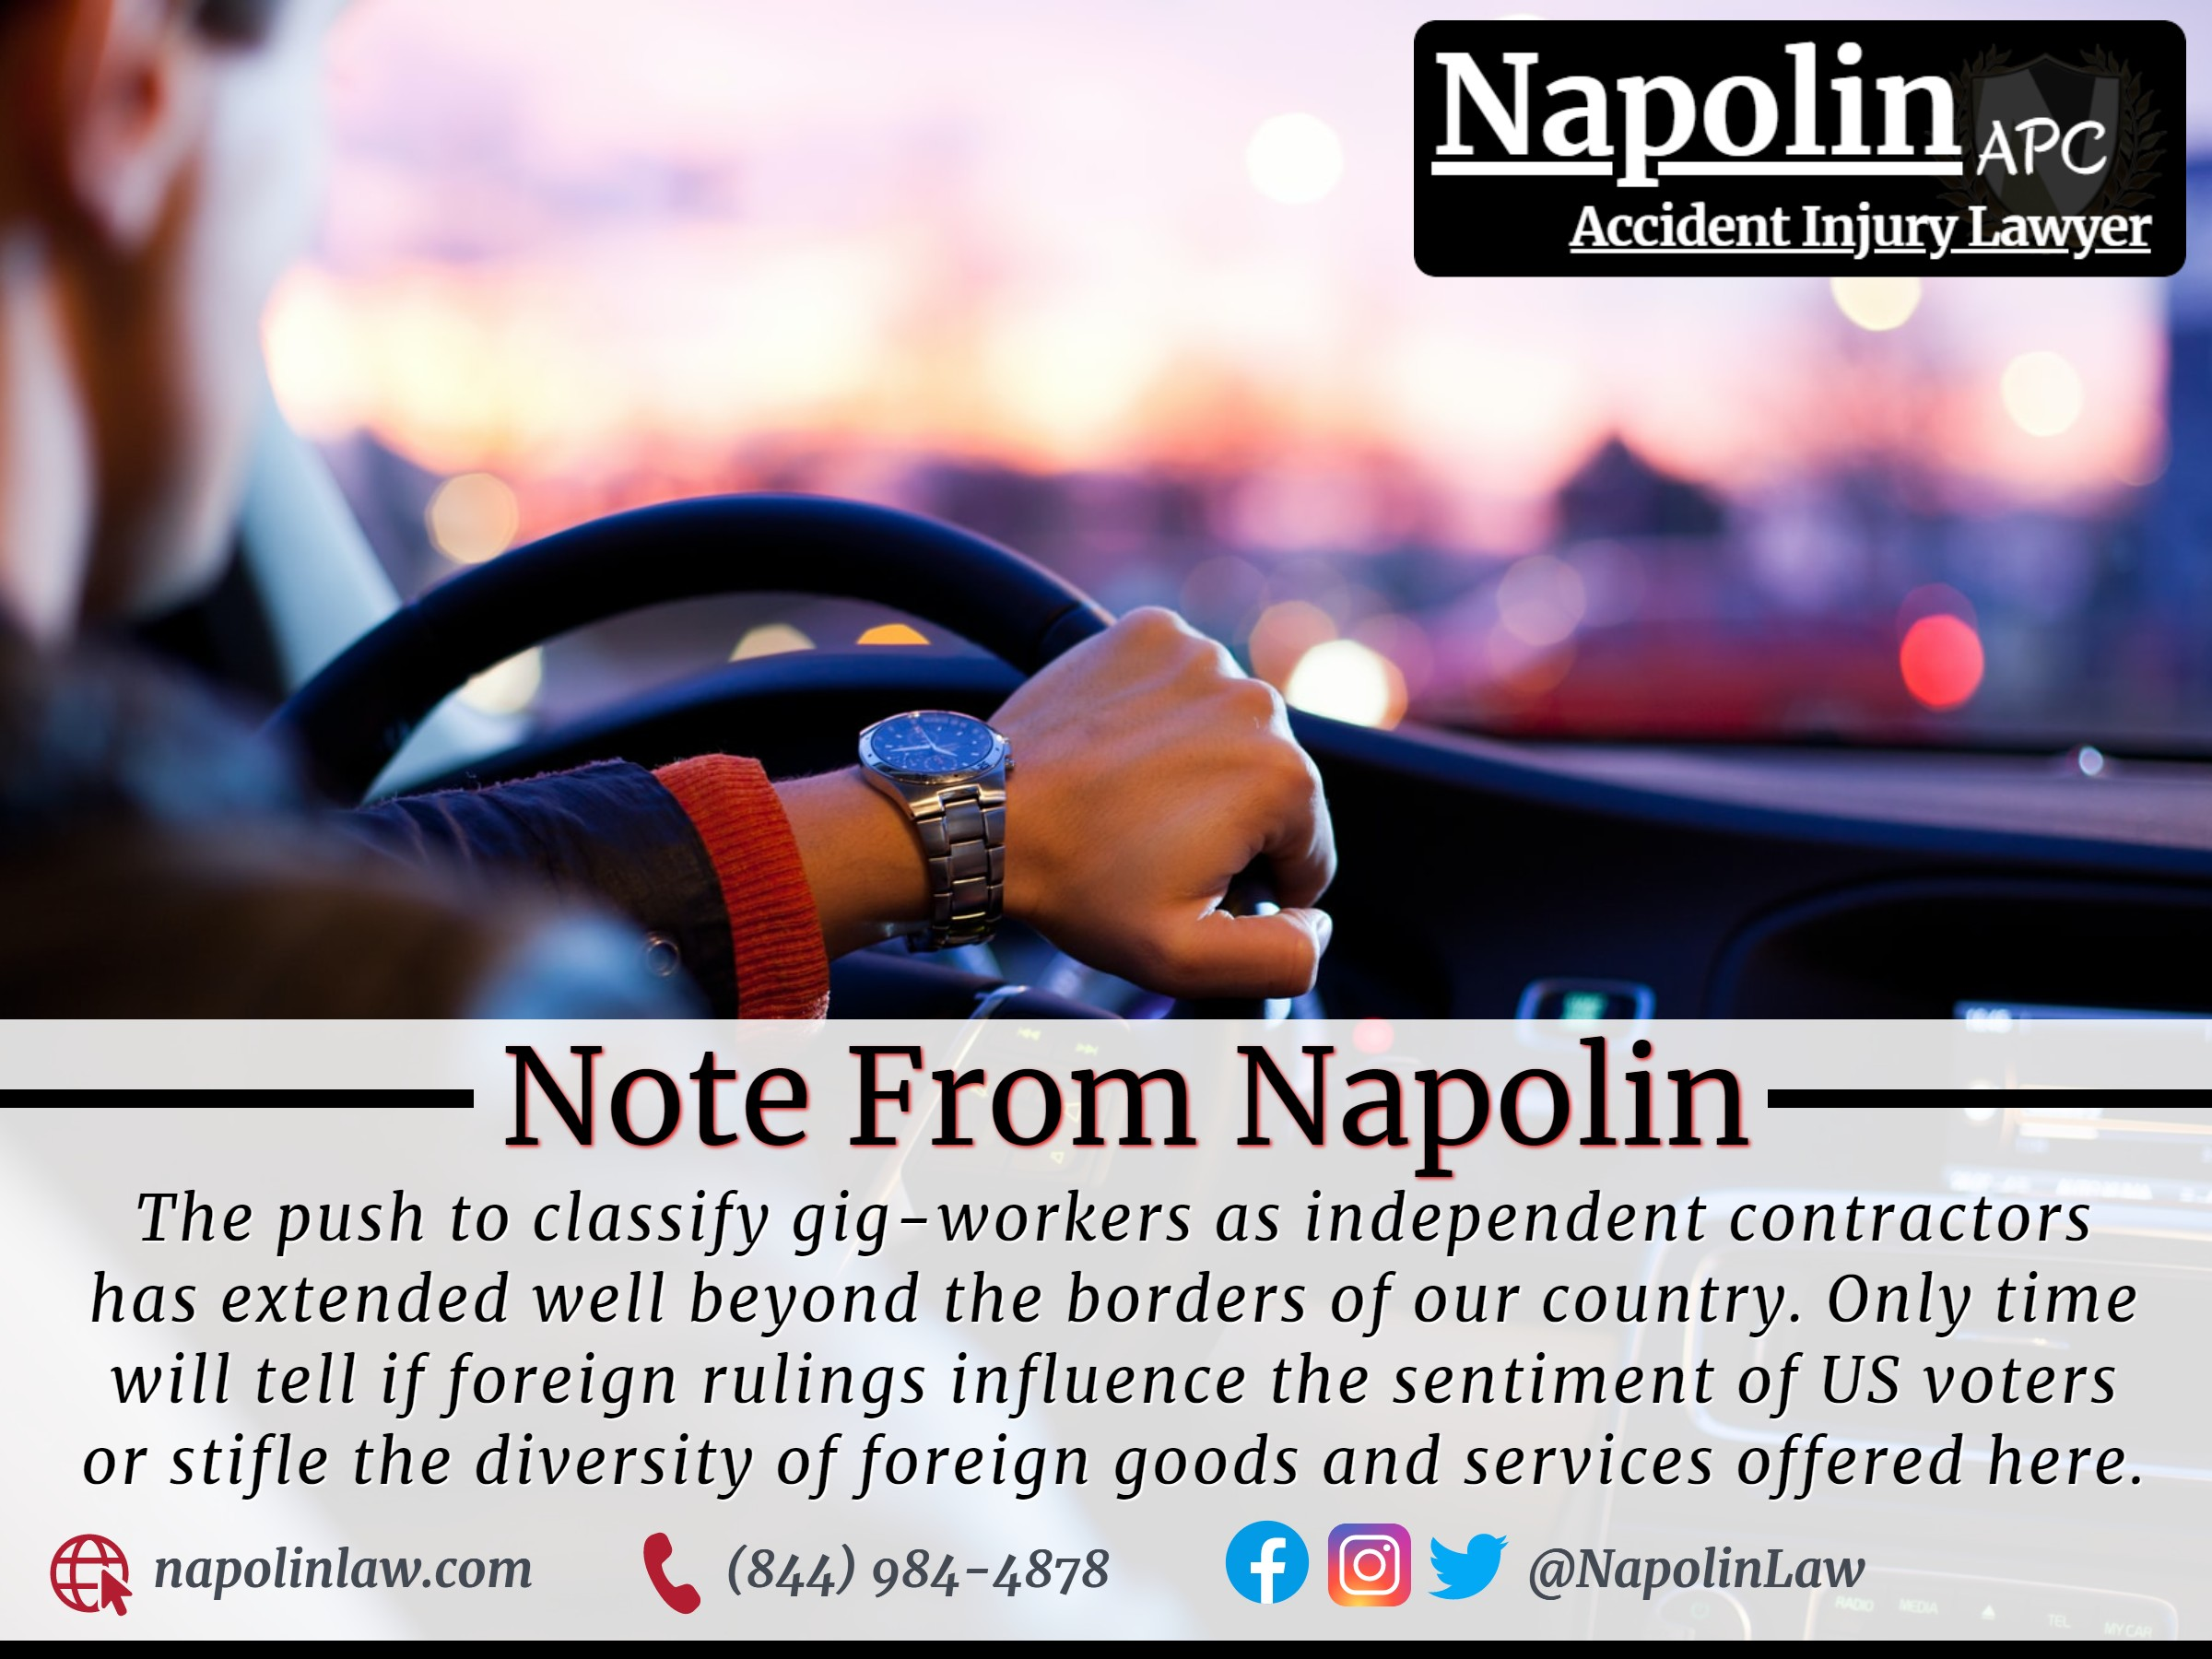 Napolin Accident Injury Lawyer Orange County